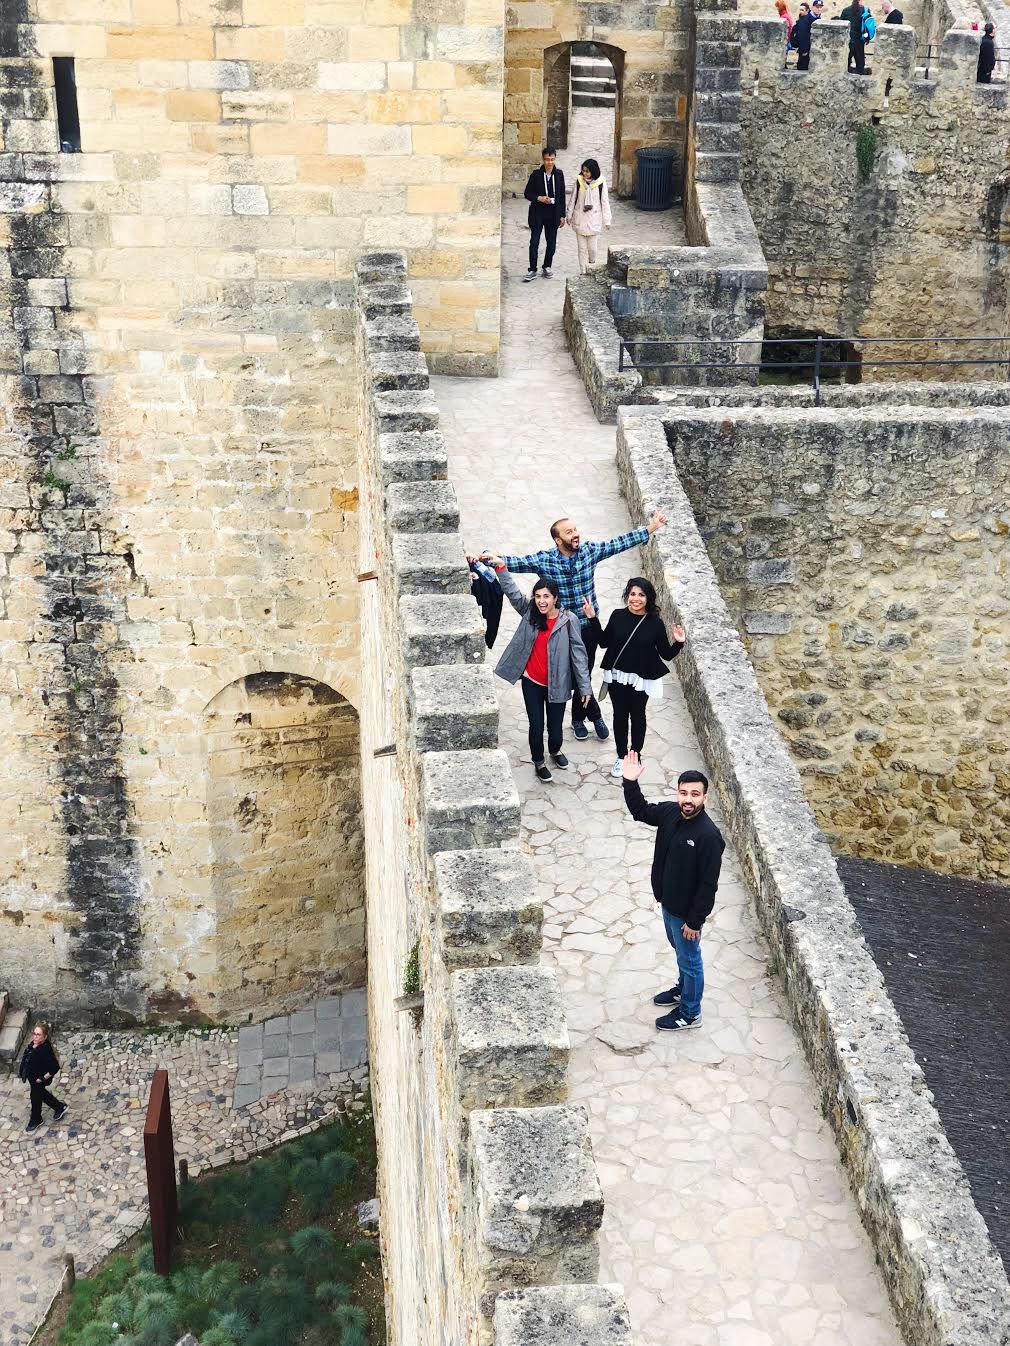 Muslim-travel-guide-Lisbon-Moors-castle-what-to-do